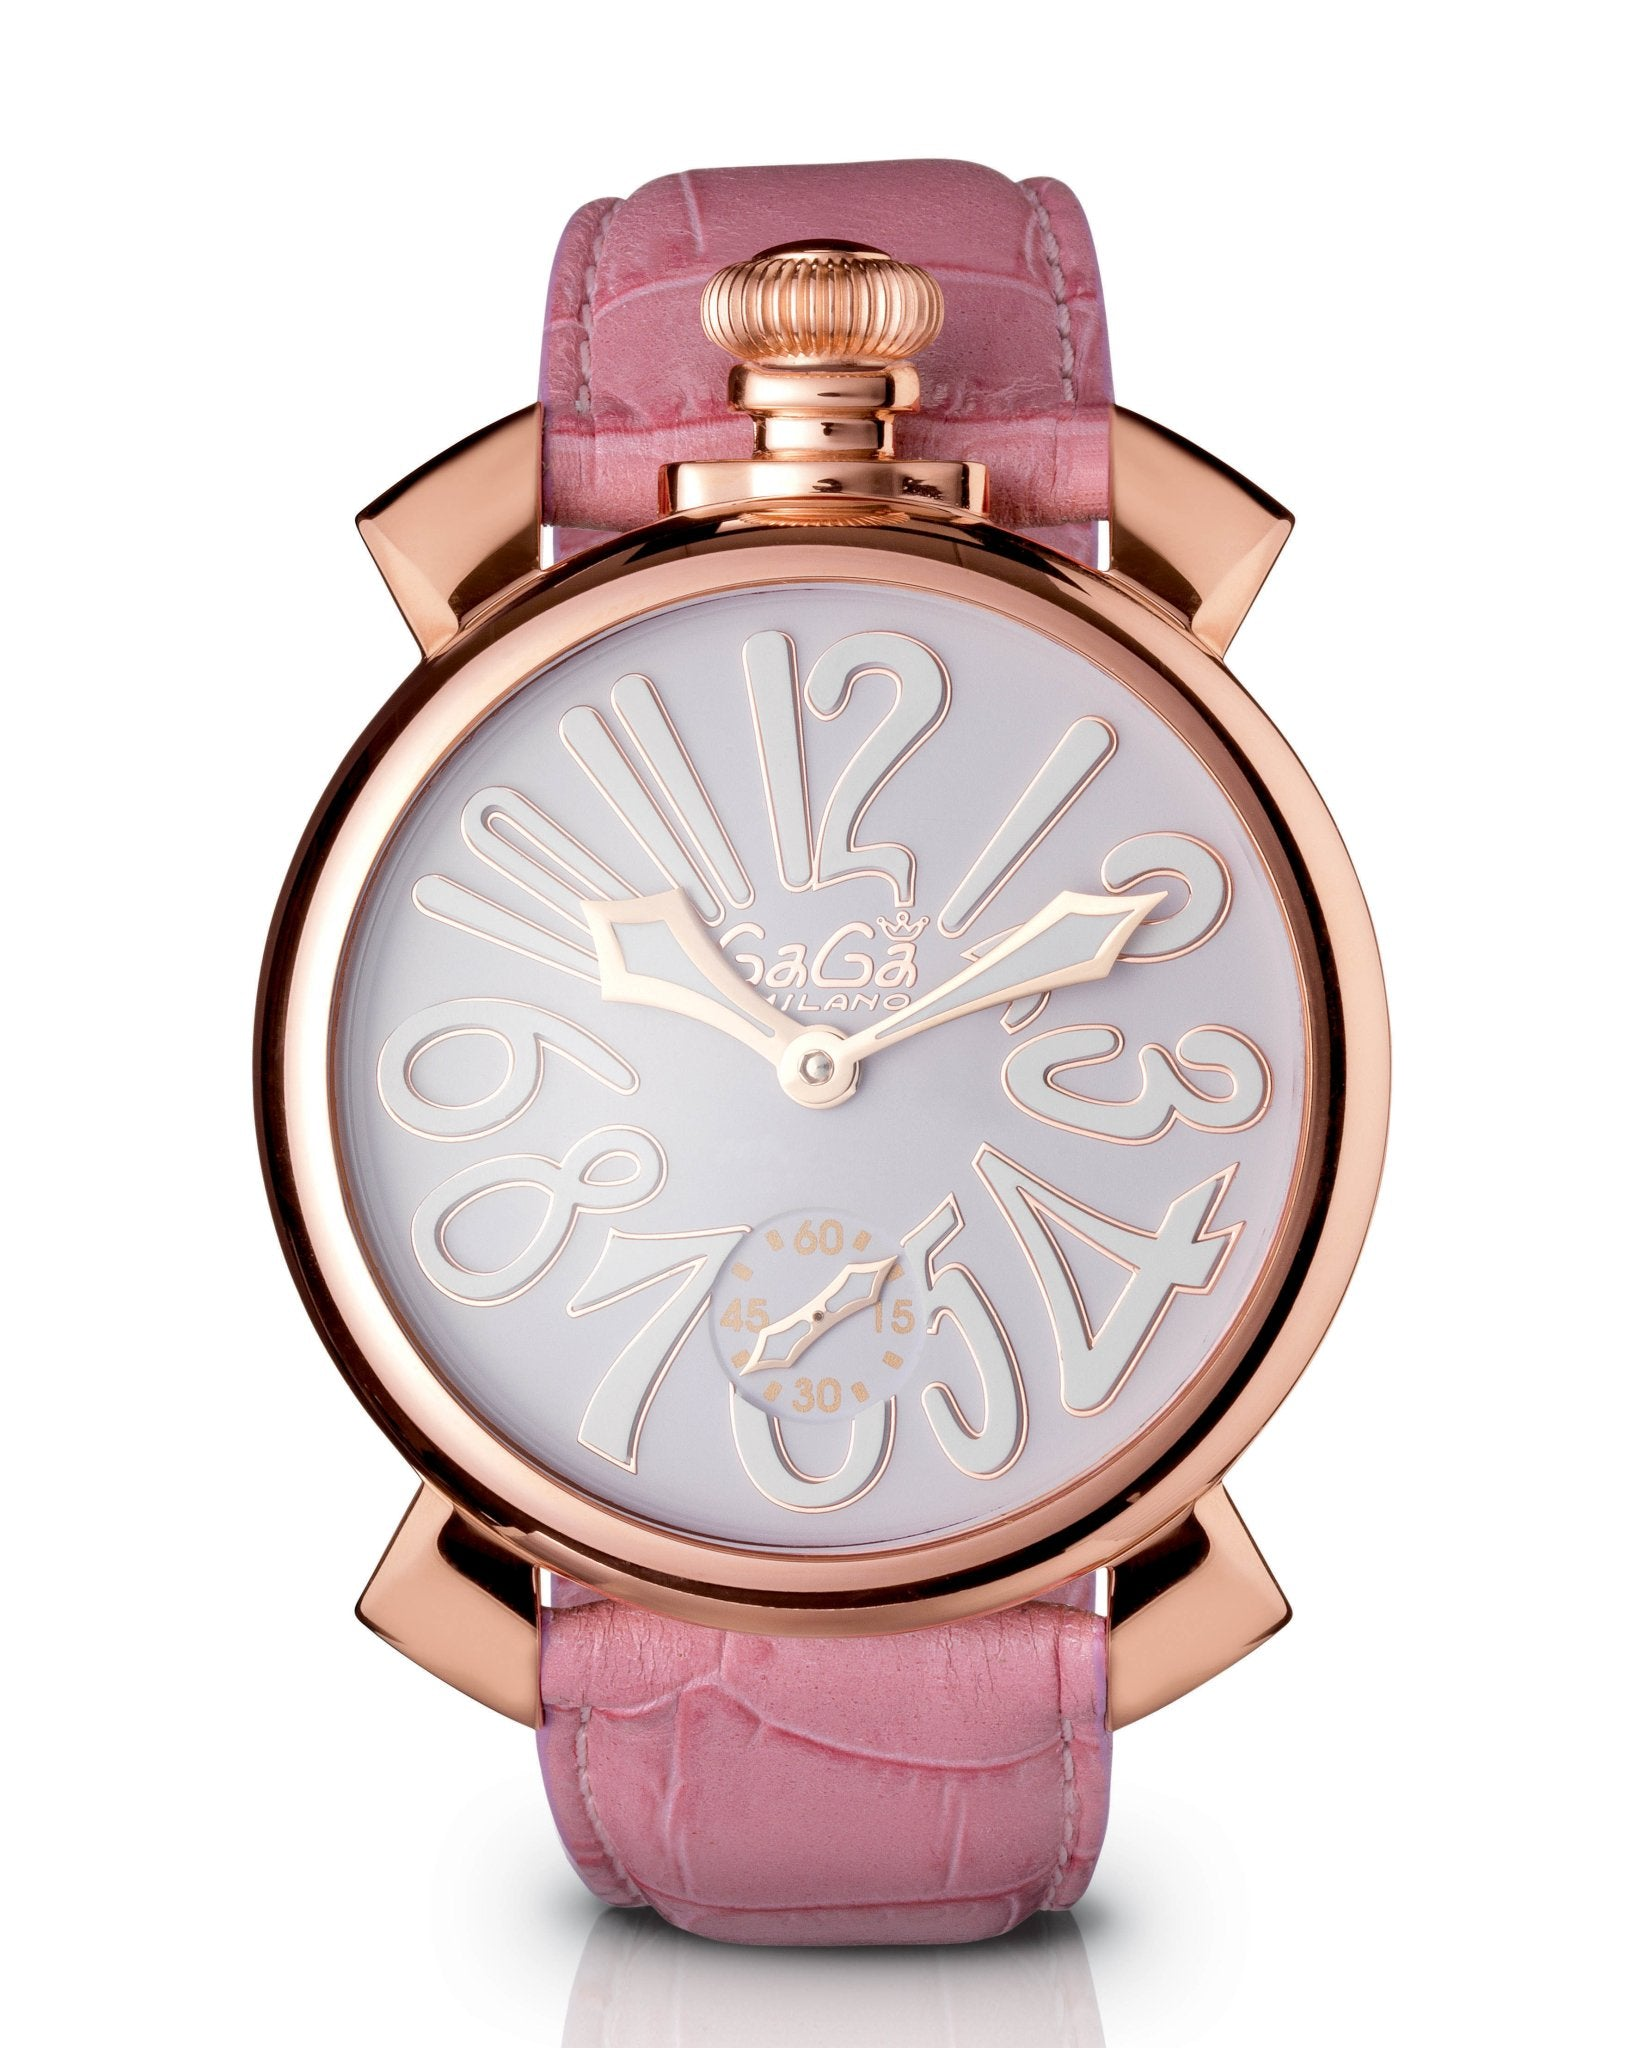 GaGà Milano Manuale 48MM Pink Rose Gold - Watches & Crystals